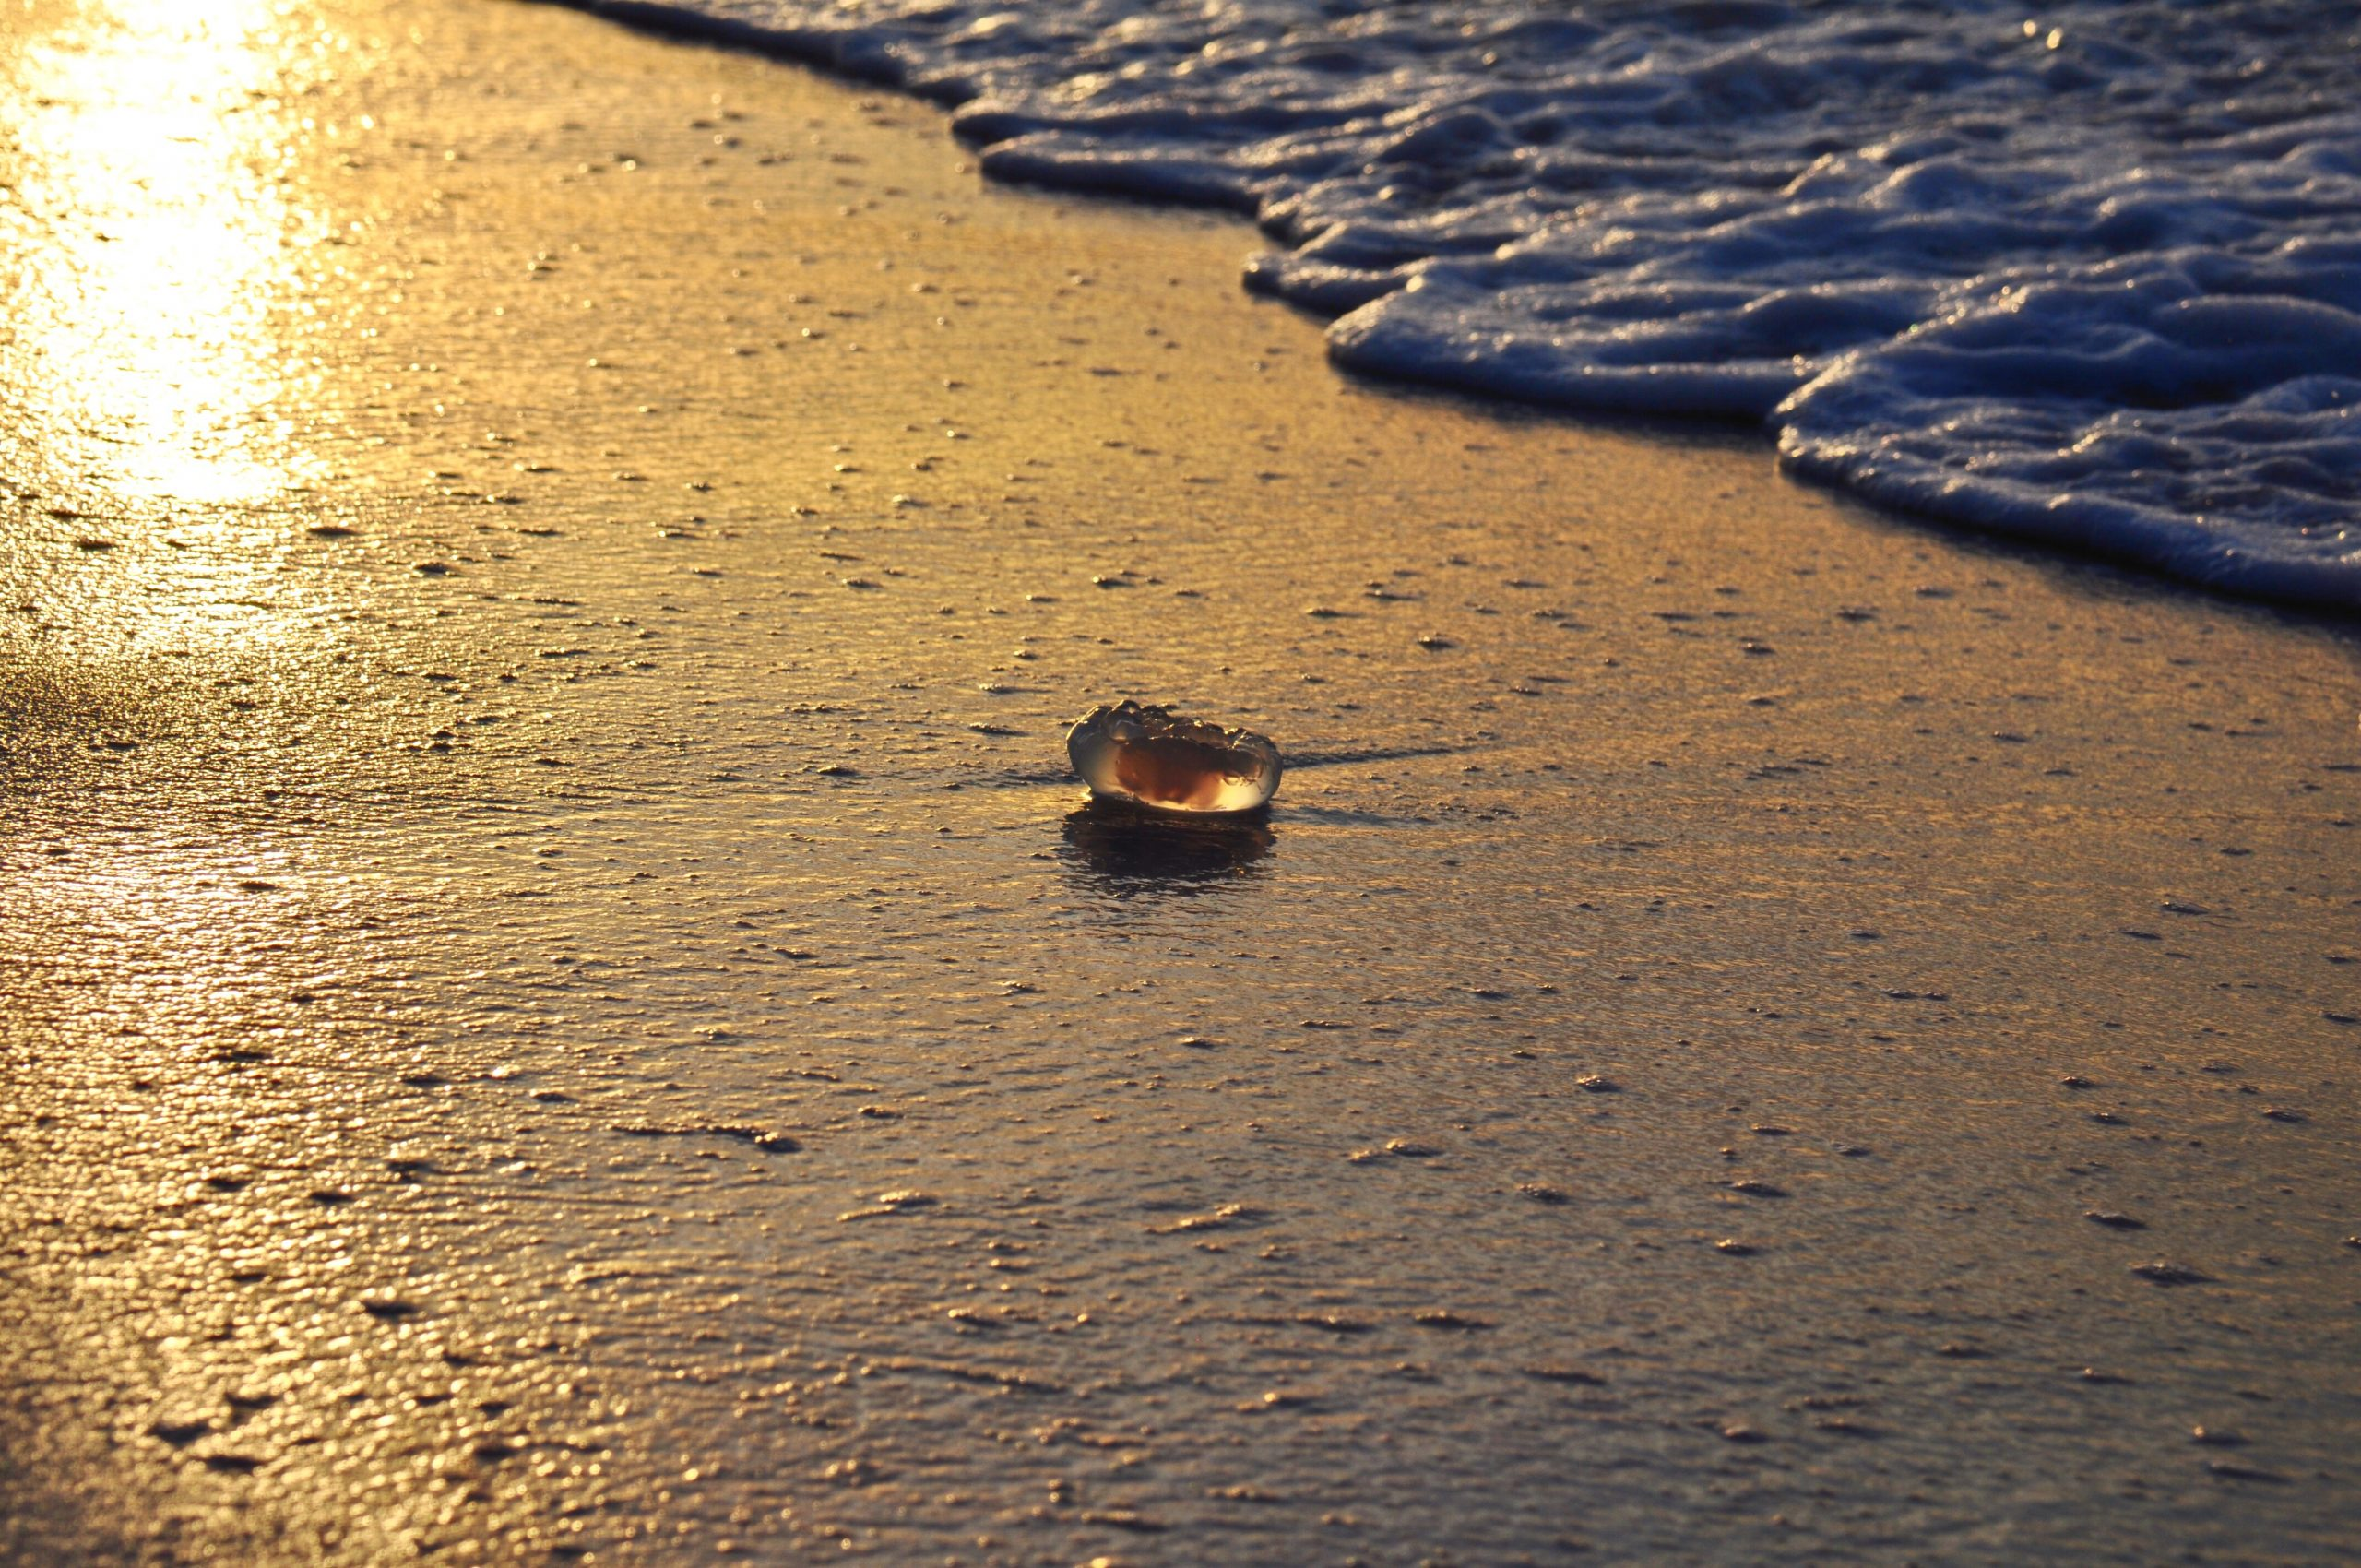 Moon jelly at sunrise in Destin